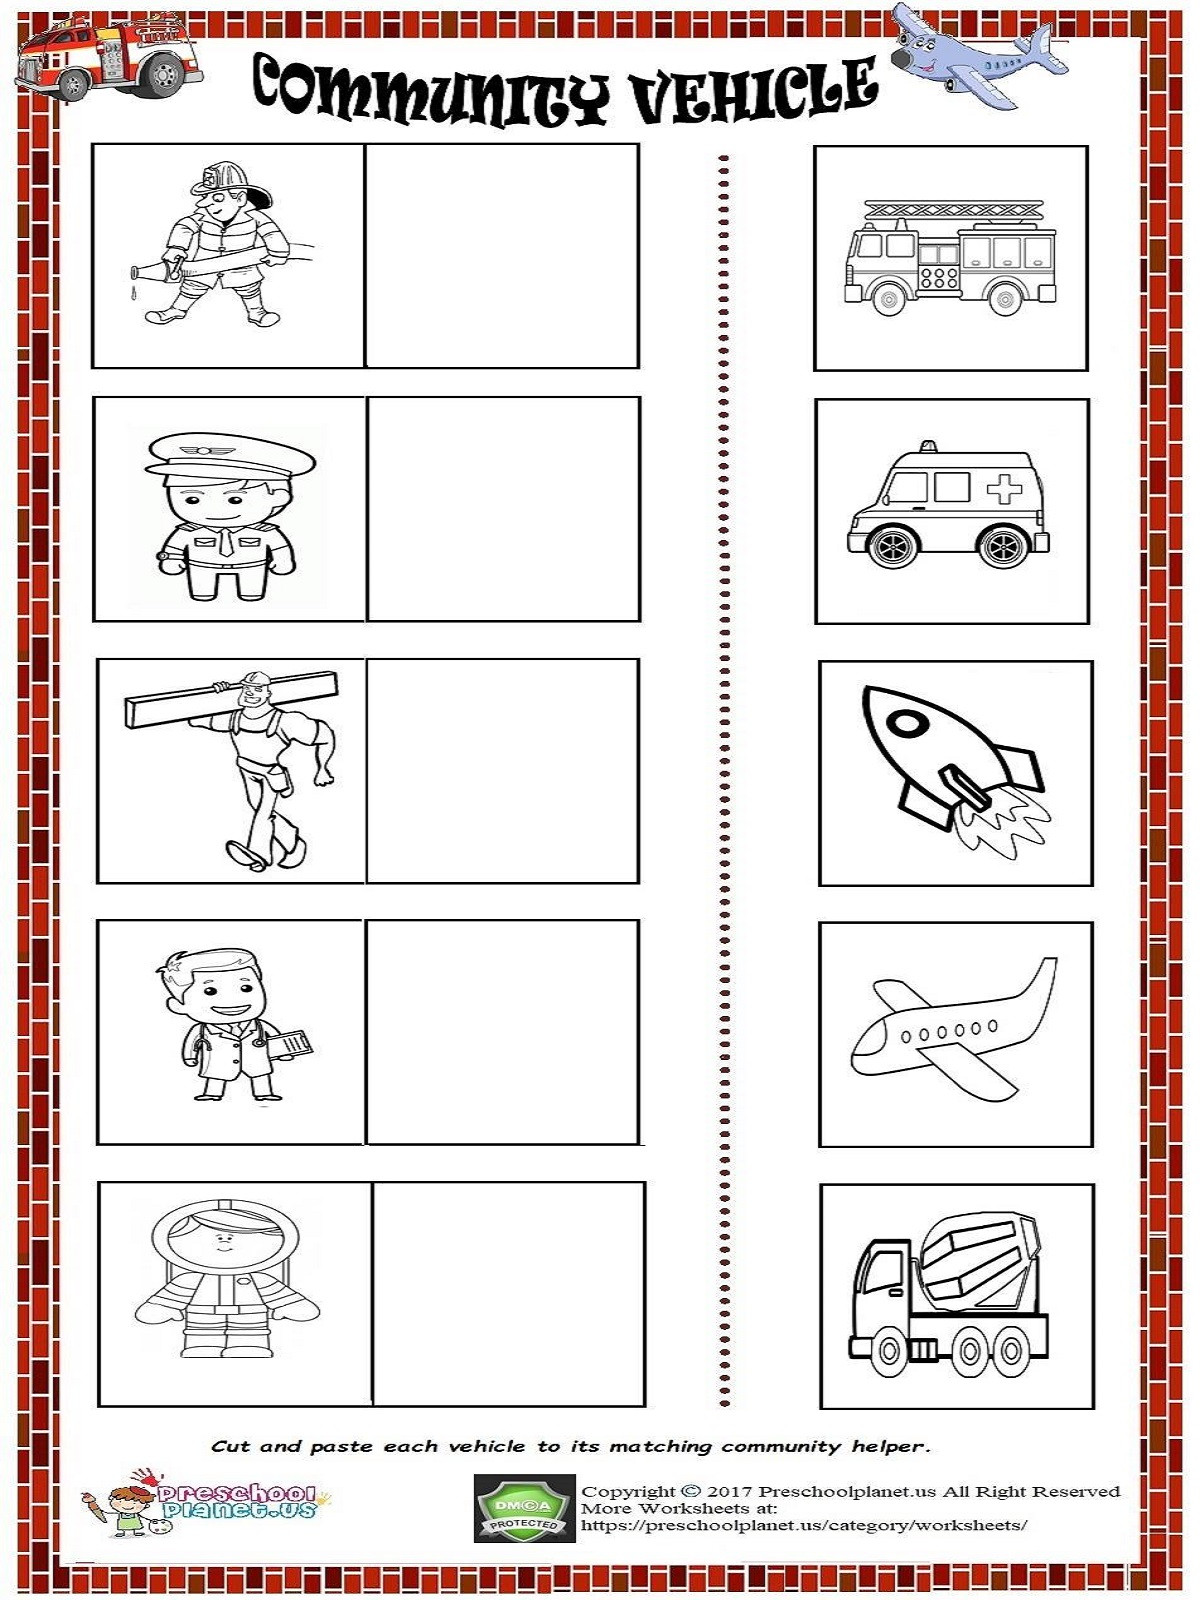 Community Helpers Worksheet for Preschool Munity Vehicle Worksheet – Preschoolplanet